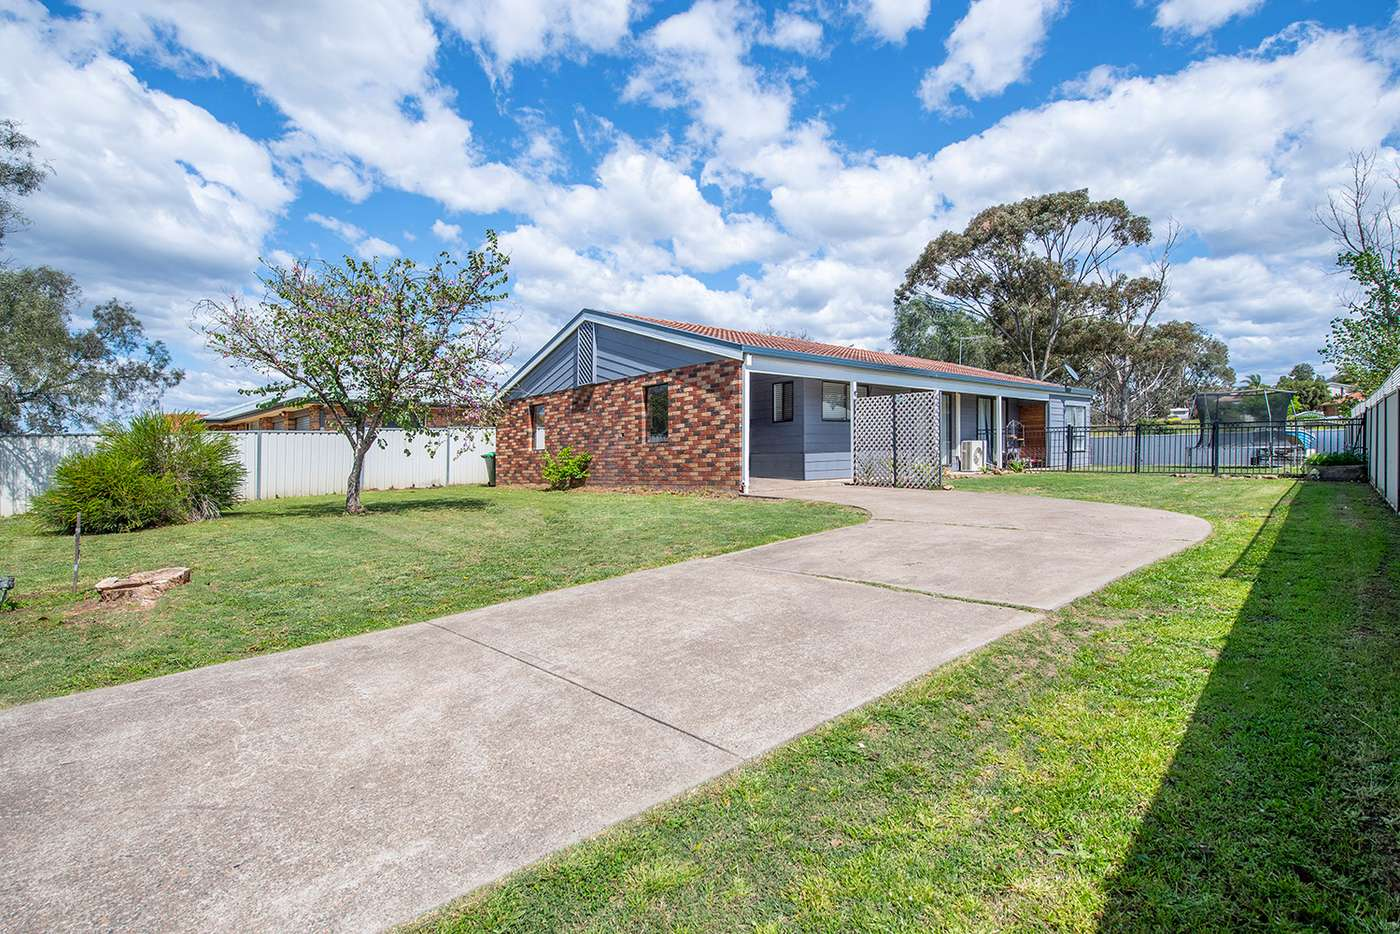 Main view of Homely house listing, 36 Virginia Street, Denman NSW 2328